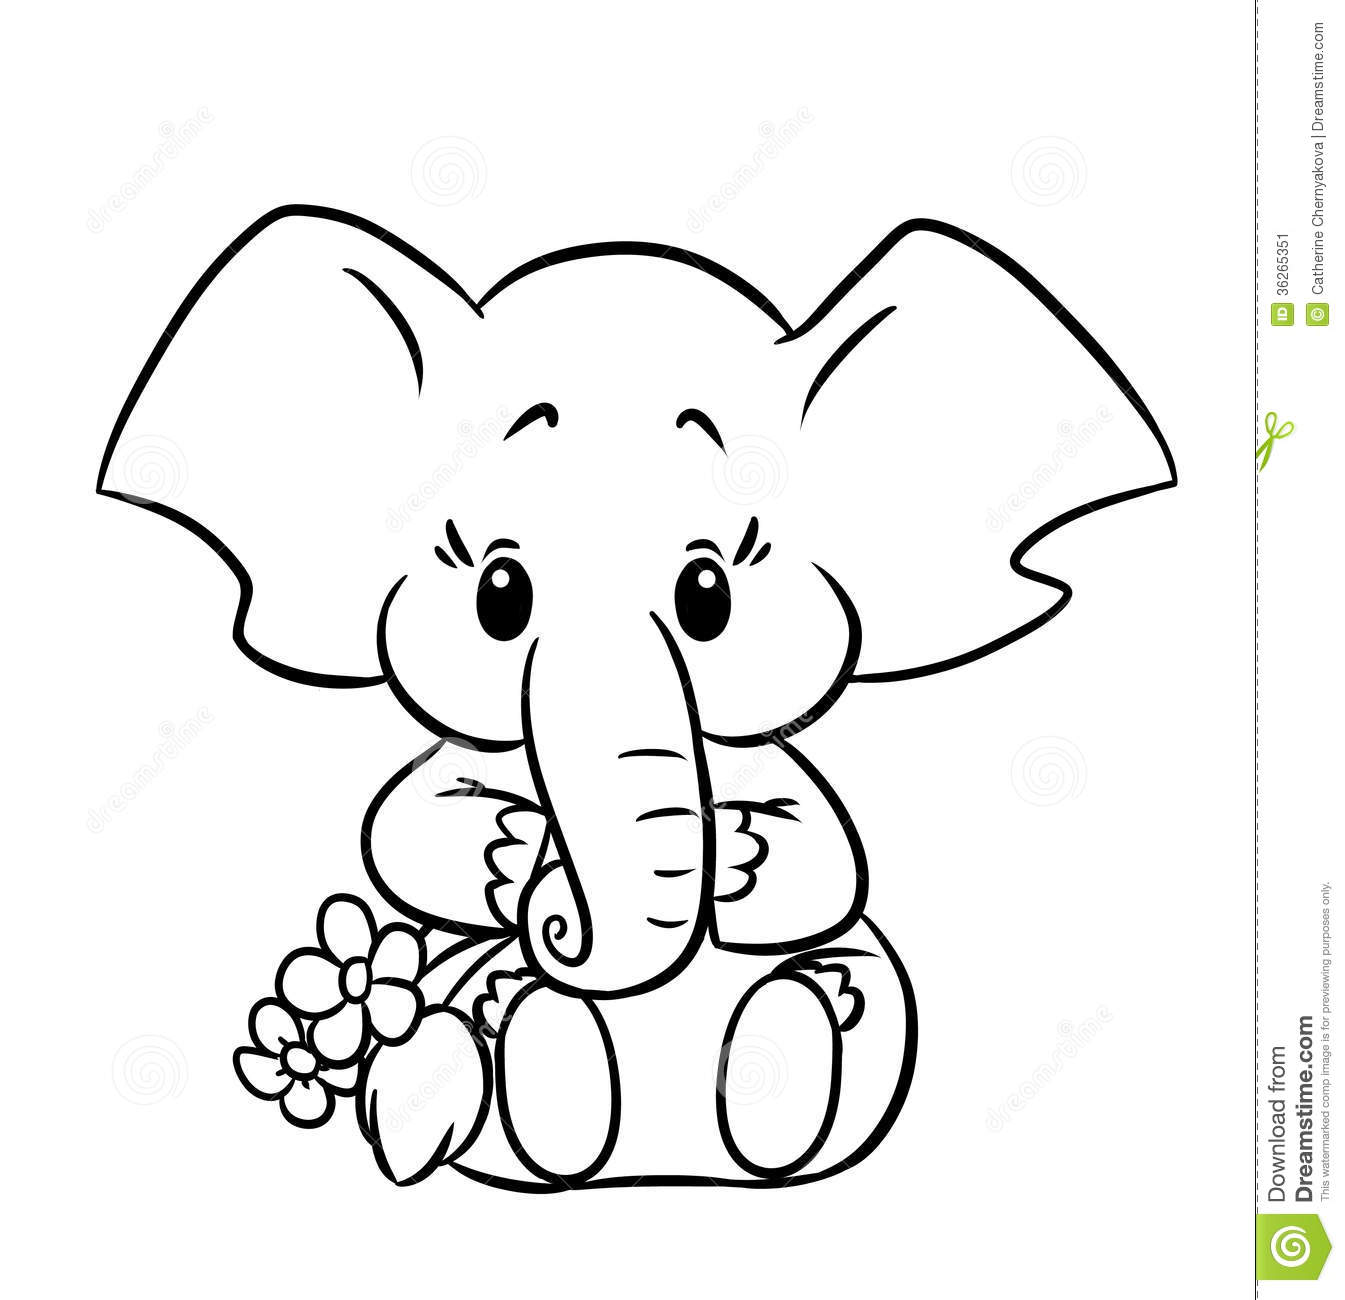 baby elephant coloring pages print - photo#3